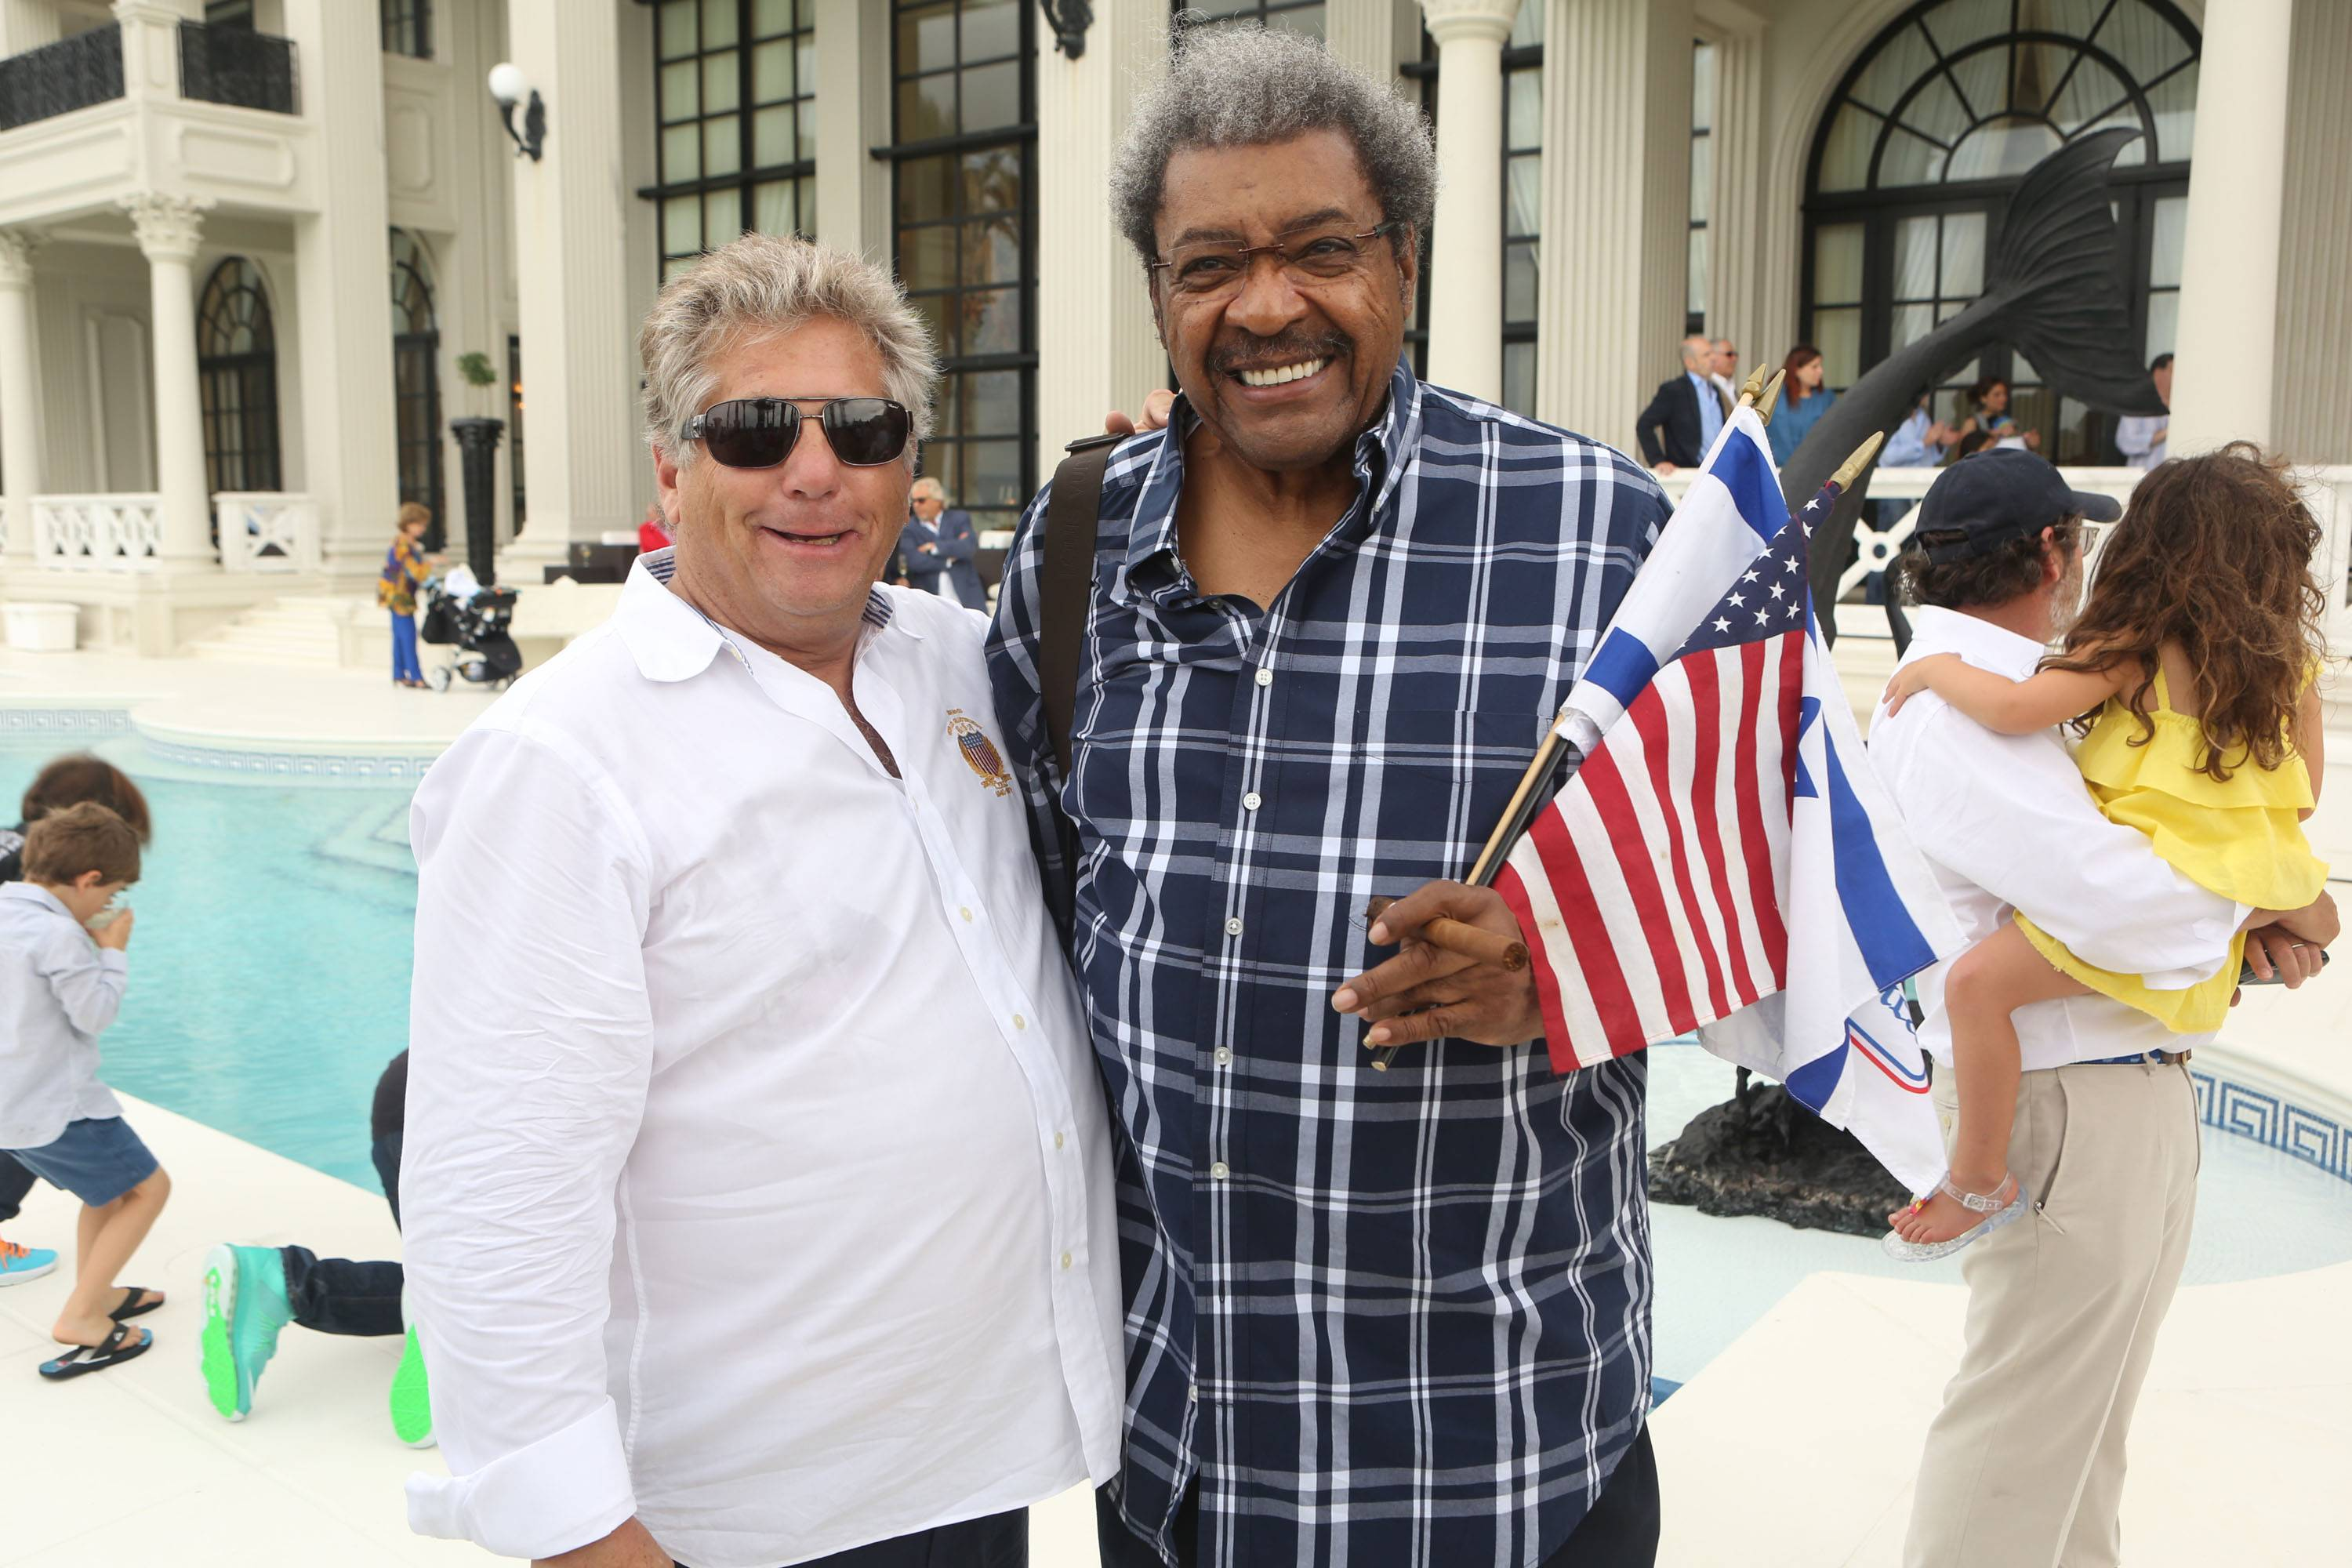 Steven Kessler & Don King3